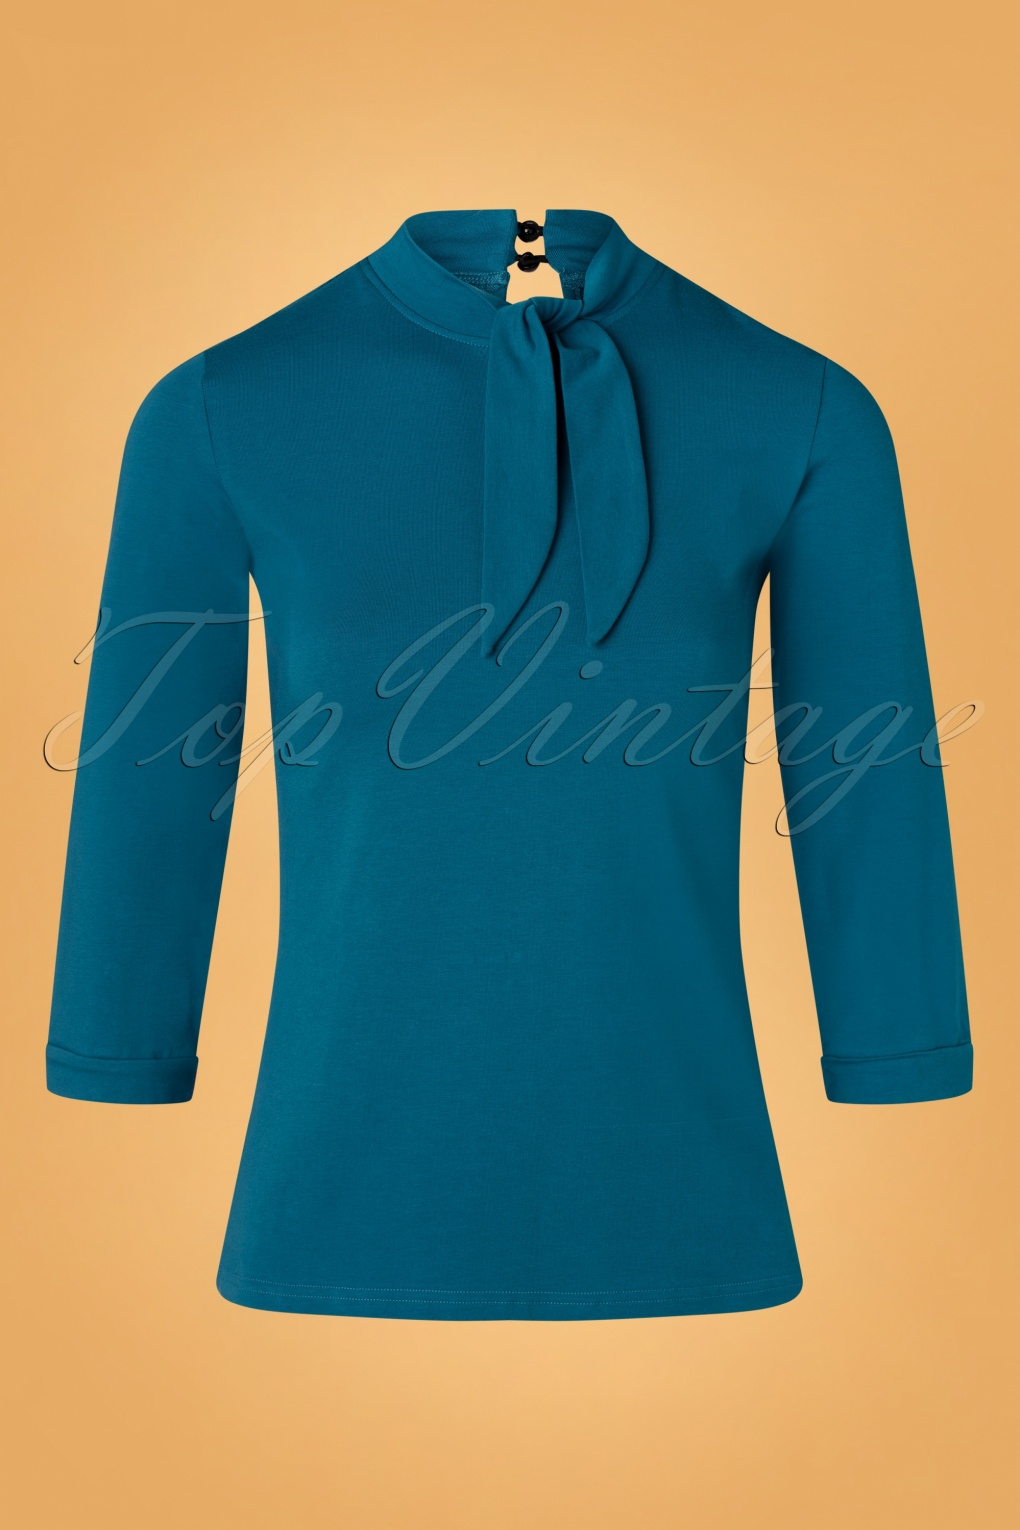 1950s Tops and Blouse Styles 50s Dolly Glam Top in Teal £25.72 AT vintagedancer.com